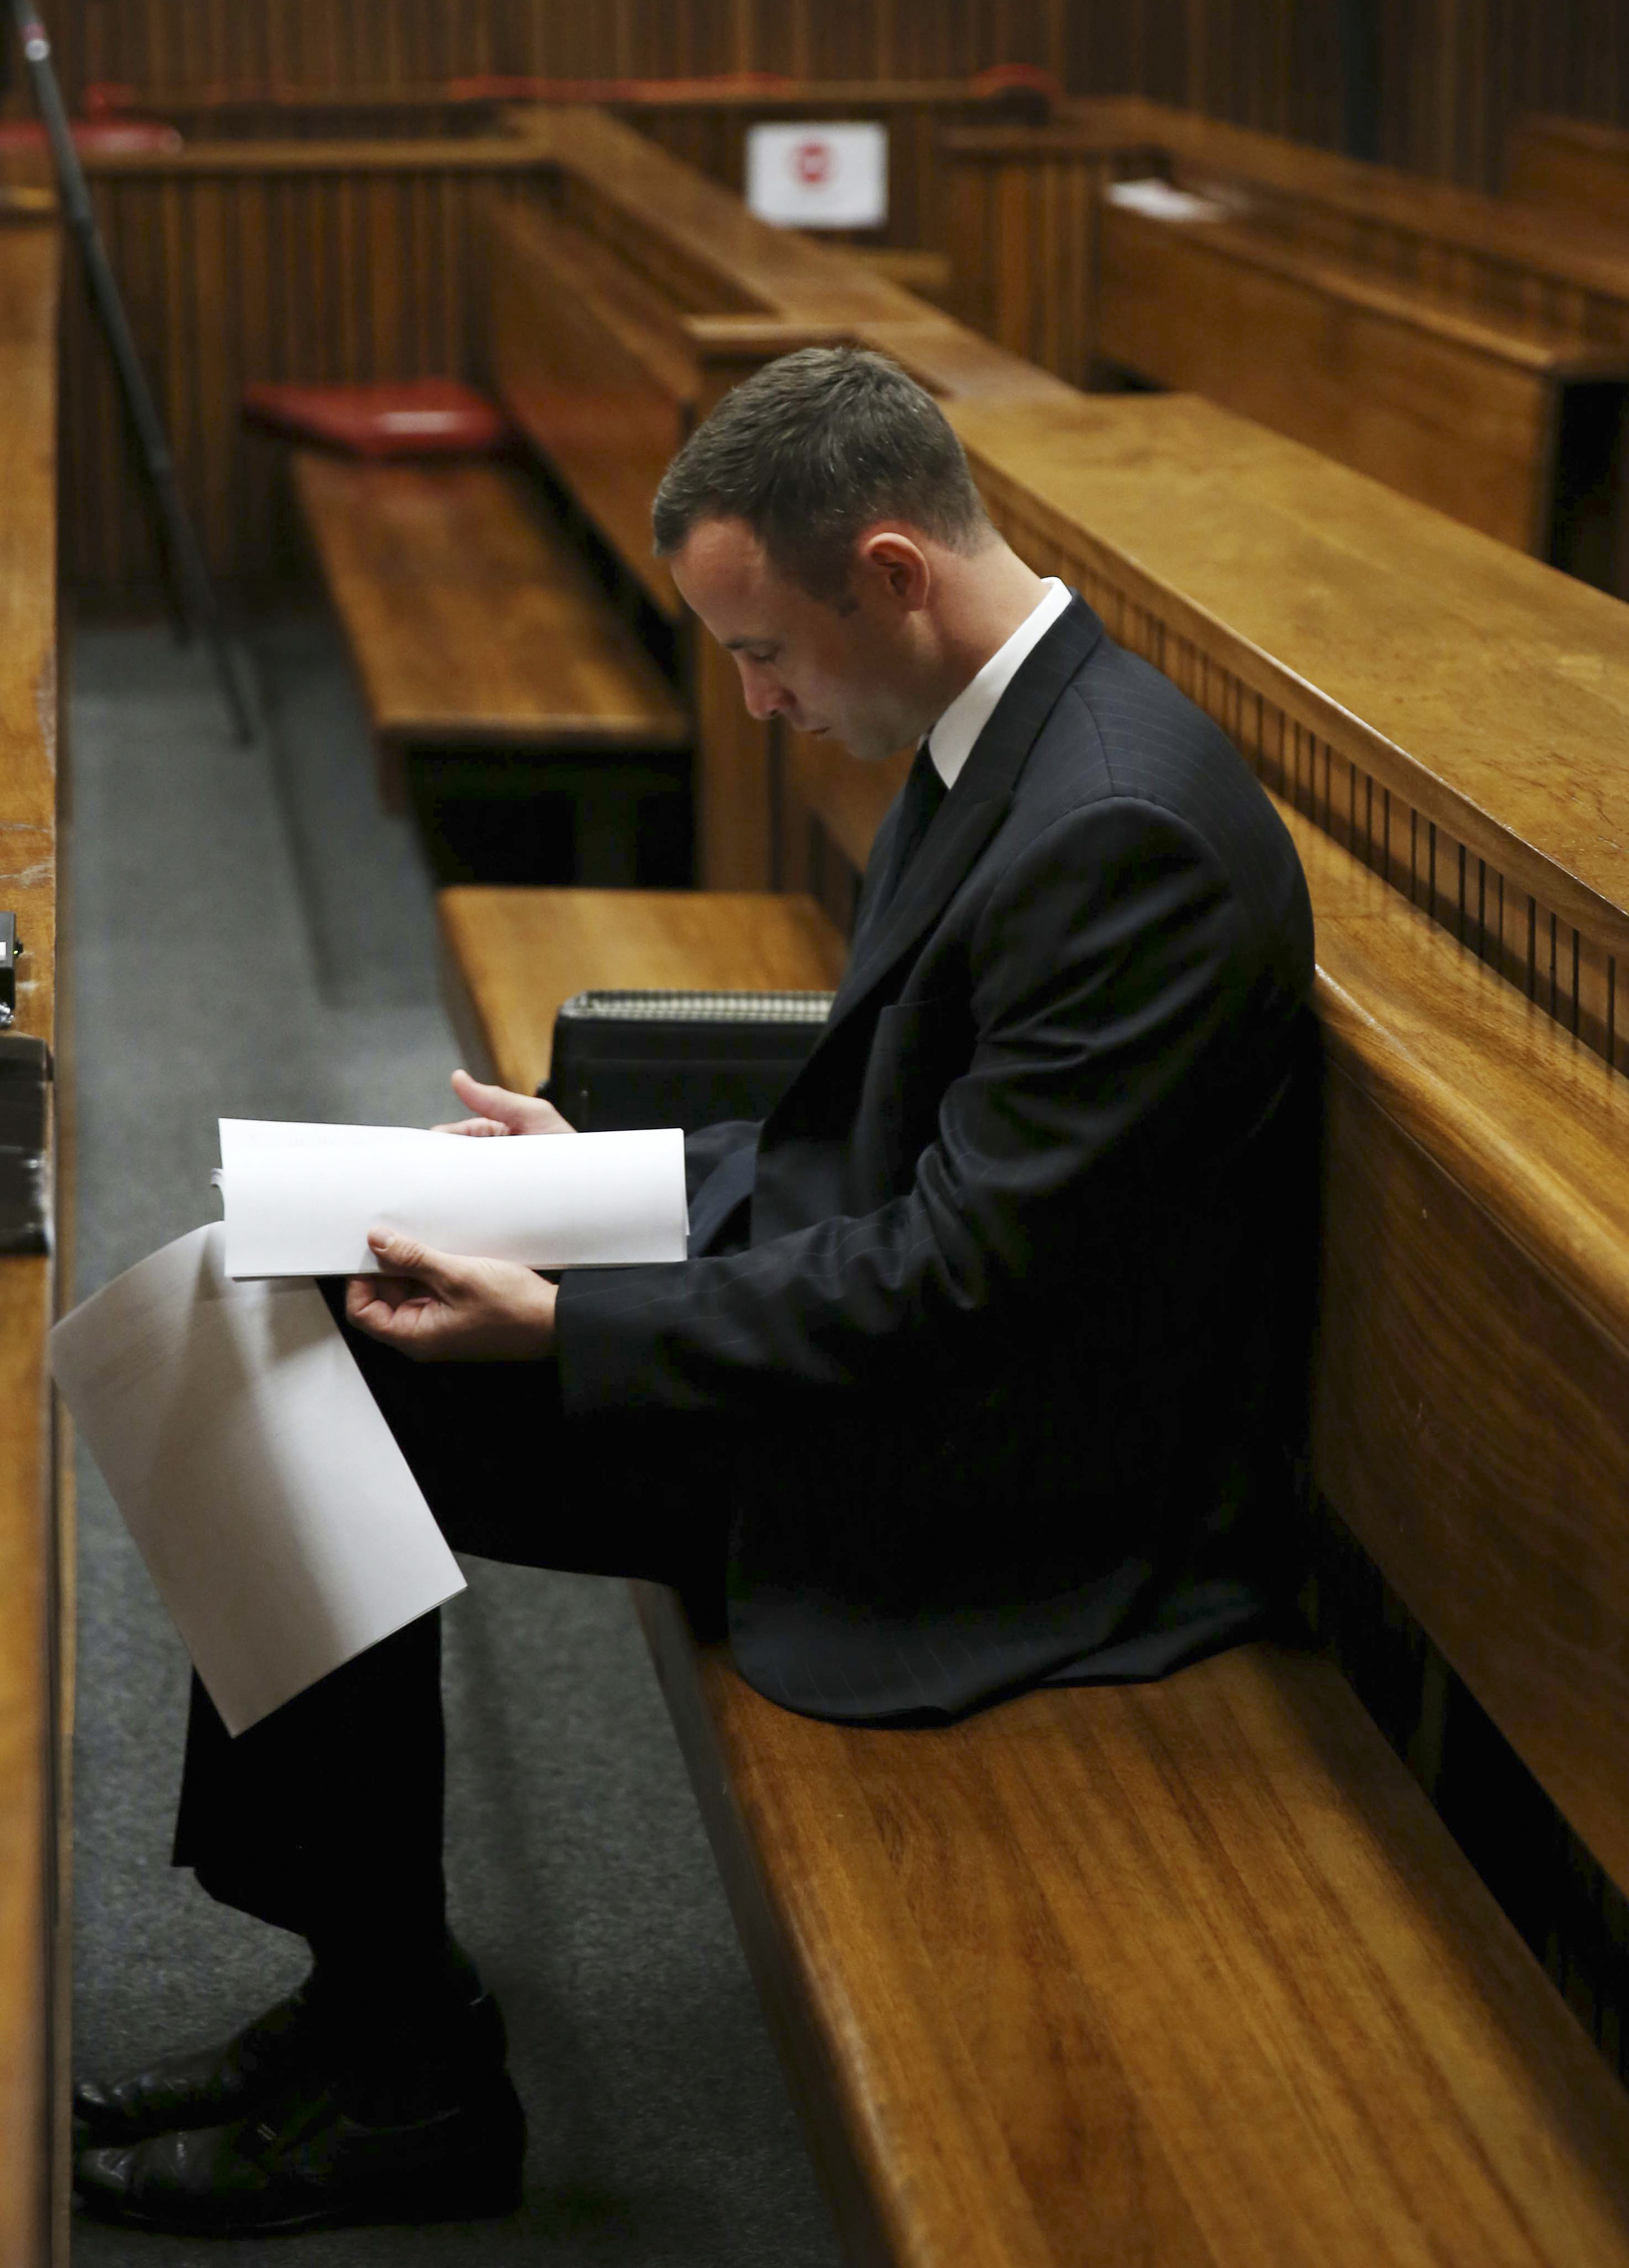 Oscar Pistorius sits in the dock at a court in Pretoria, South Africa, Tuesday, March 25, 2014. Pistorius is charged with the Valentines Day 2013 shooting death of his girlfriend Reeva Steenkamp. (AP Photo/Esa Alexander, Pool)